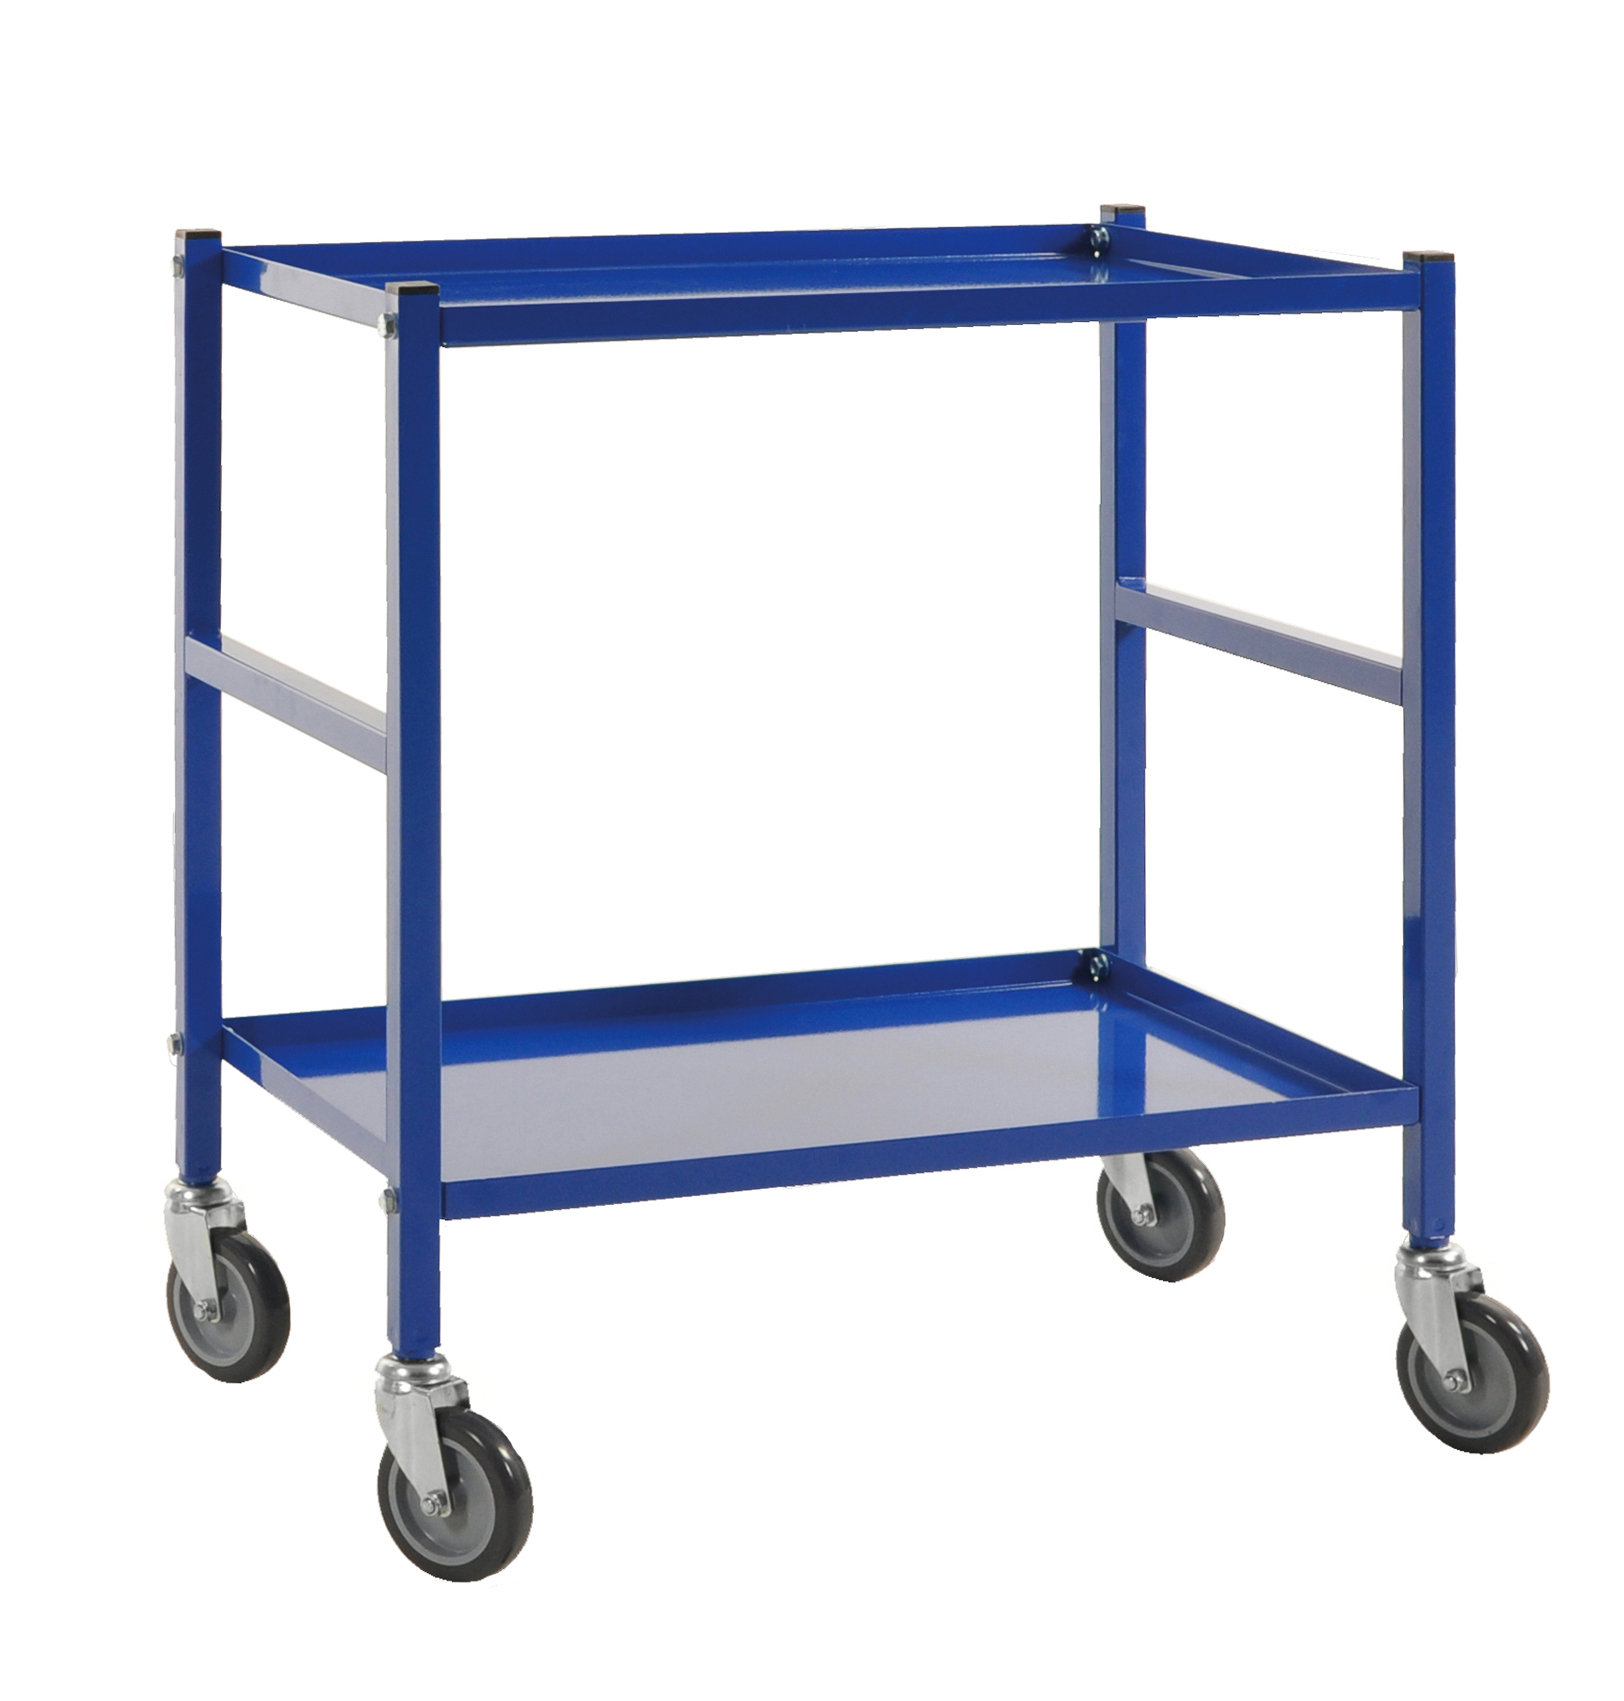 KM3100   Roll table